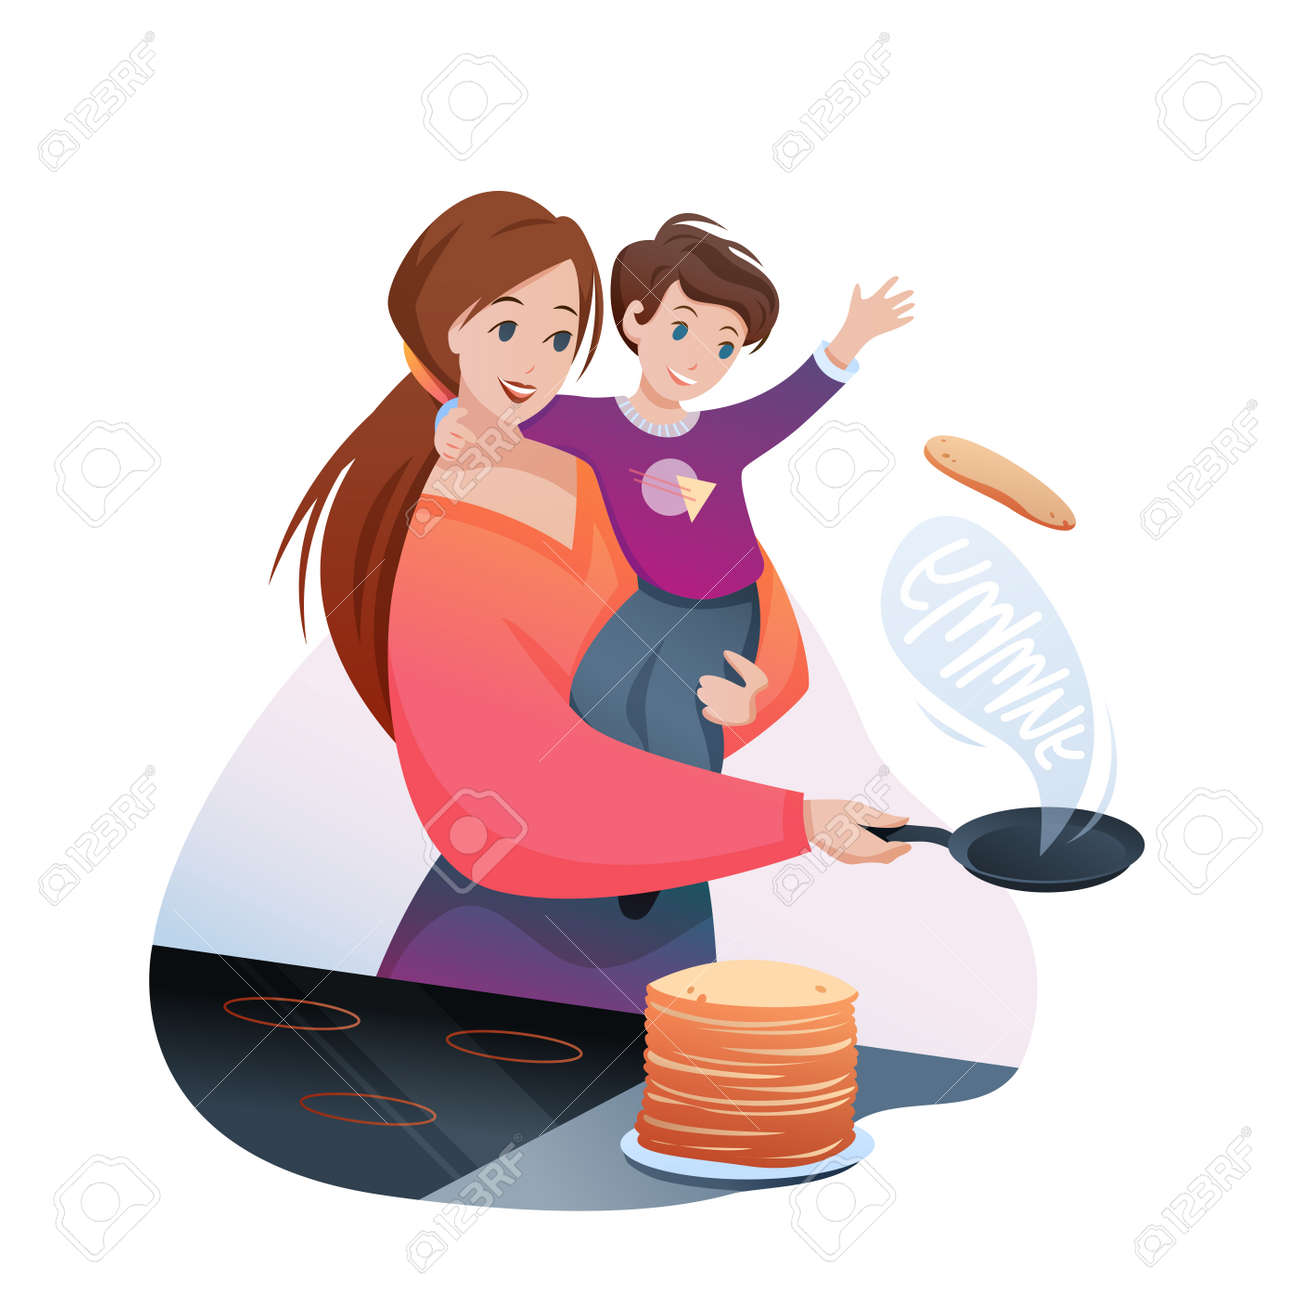 Mother cooks family breakfast food vector illustration. Cartoon flat mom character cooking yummy pancakes, holding boy child in hands, happy motherhood isolated on white - 151954111